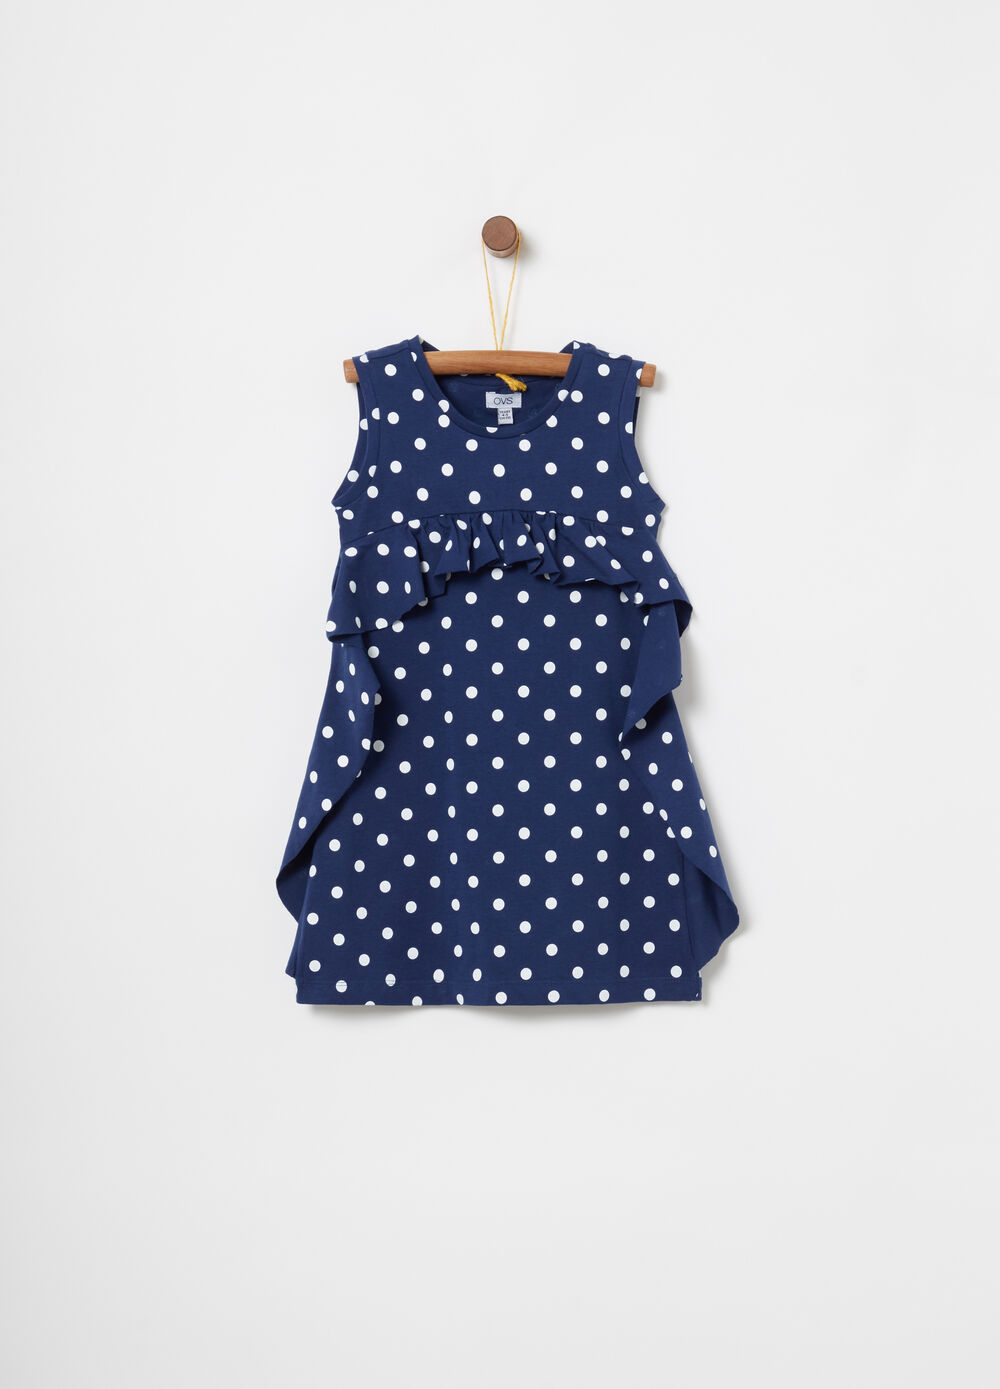 Sleeveless dress with polka dot frills